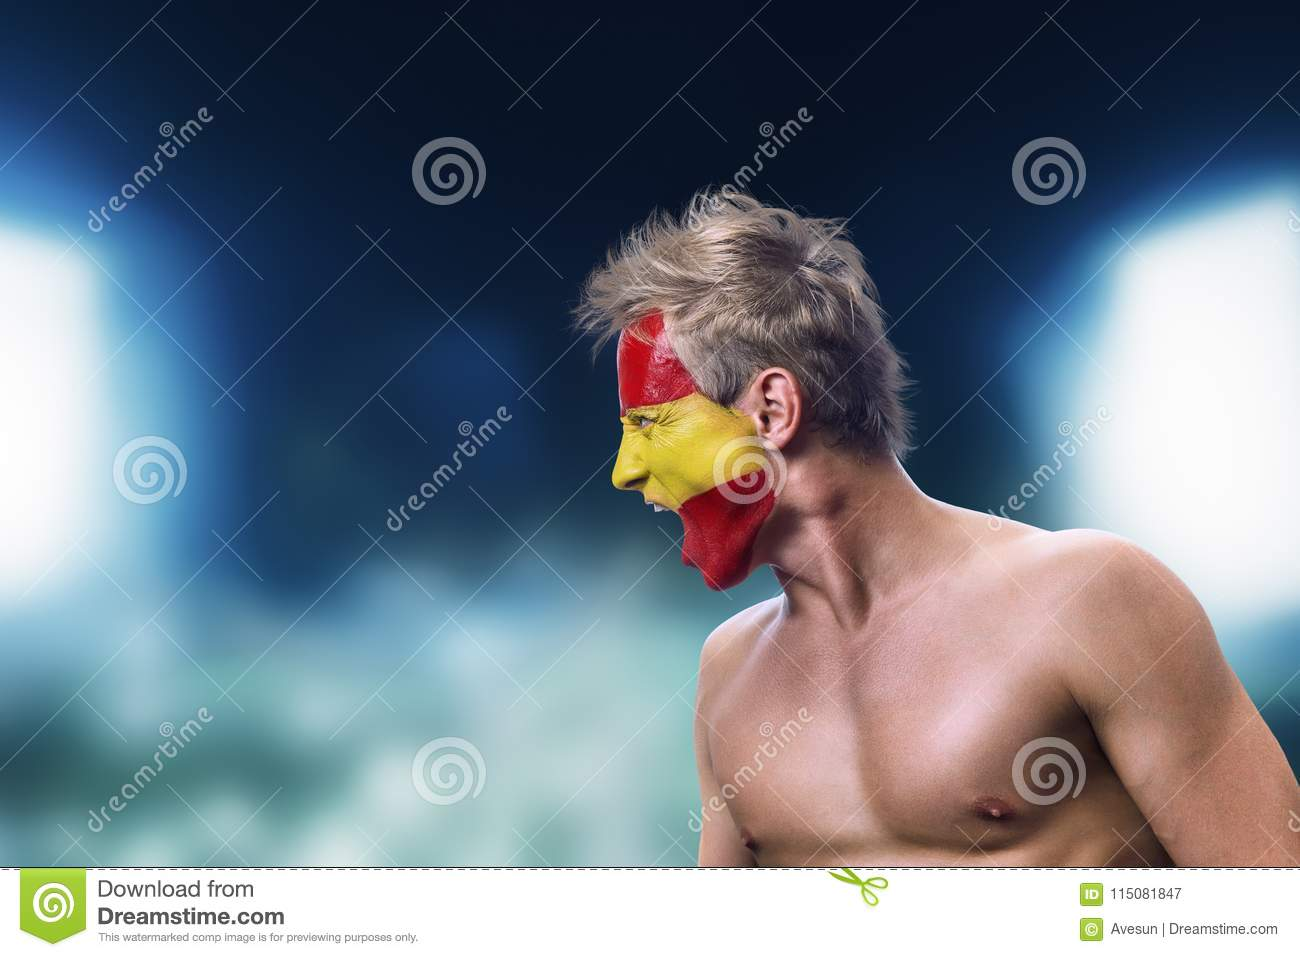 Football Fan With Spain Flag Painted On His Face Stock Image - Image